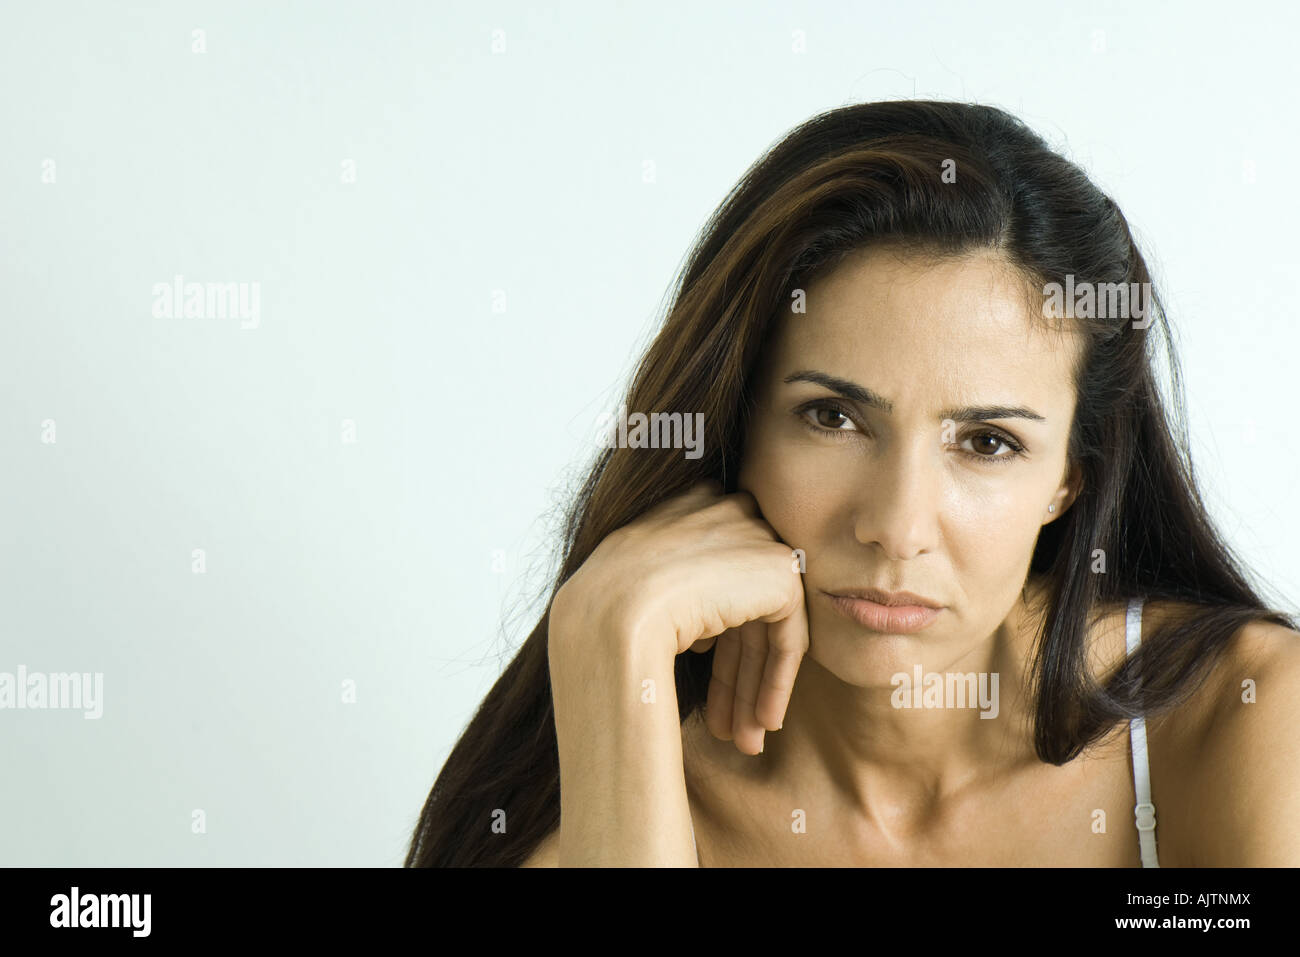 Woman pouting, looking at camera, portrait - Stock Image